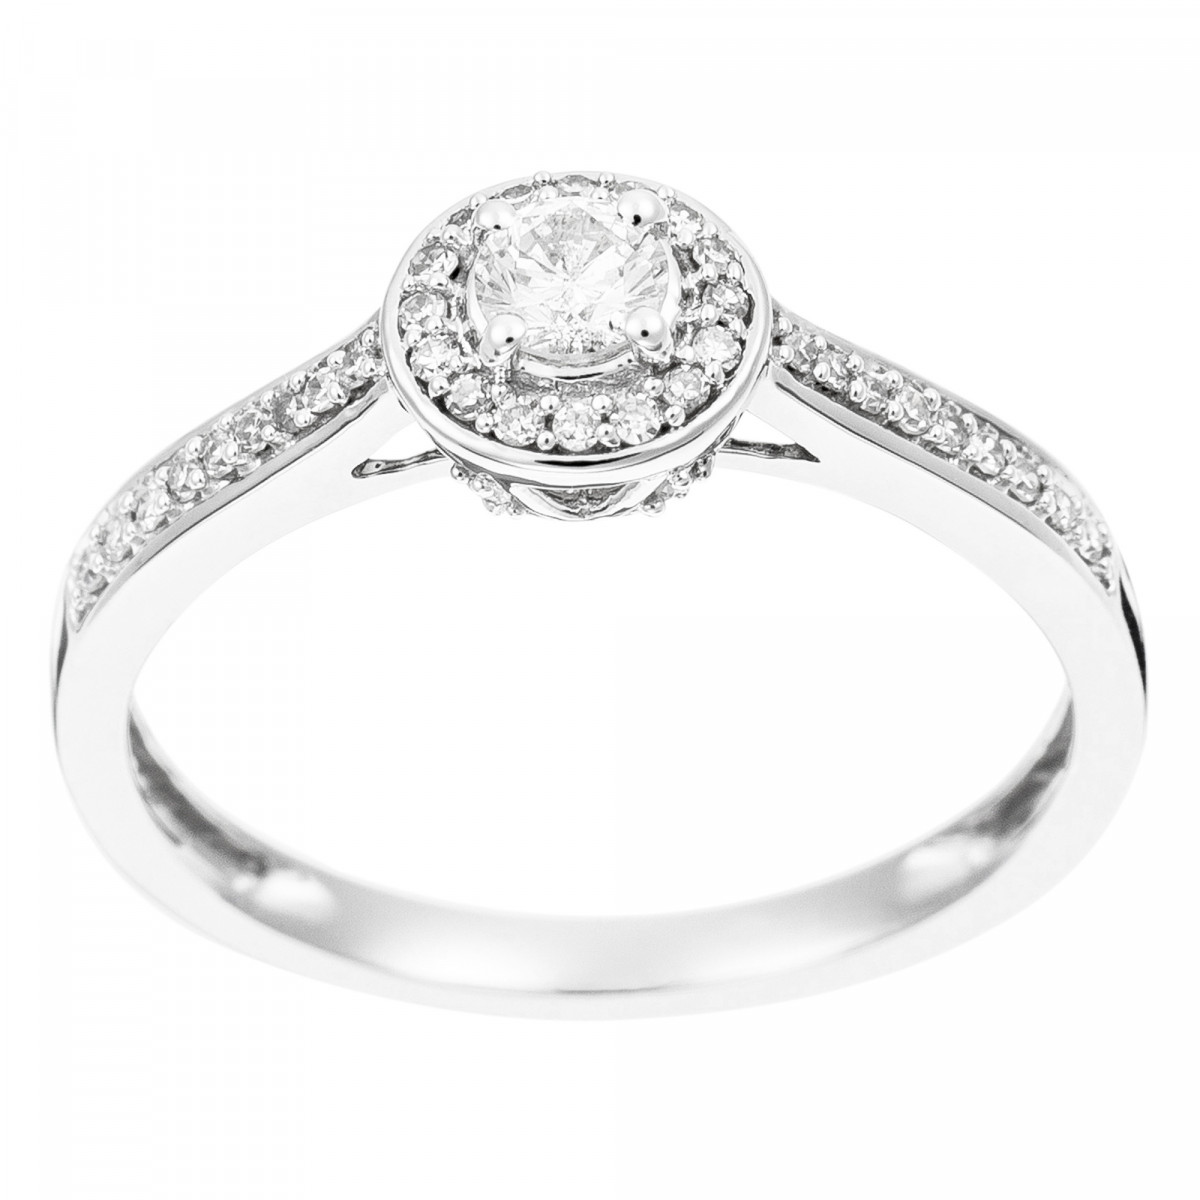 "Solitaire Or Blanc et Diamants 0,30 carat ""BRILLANT SOMPTUEUX"""